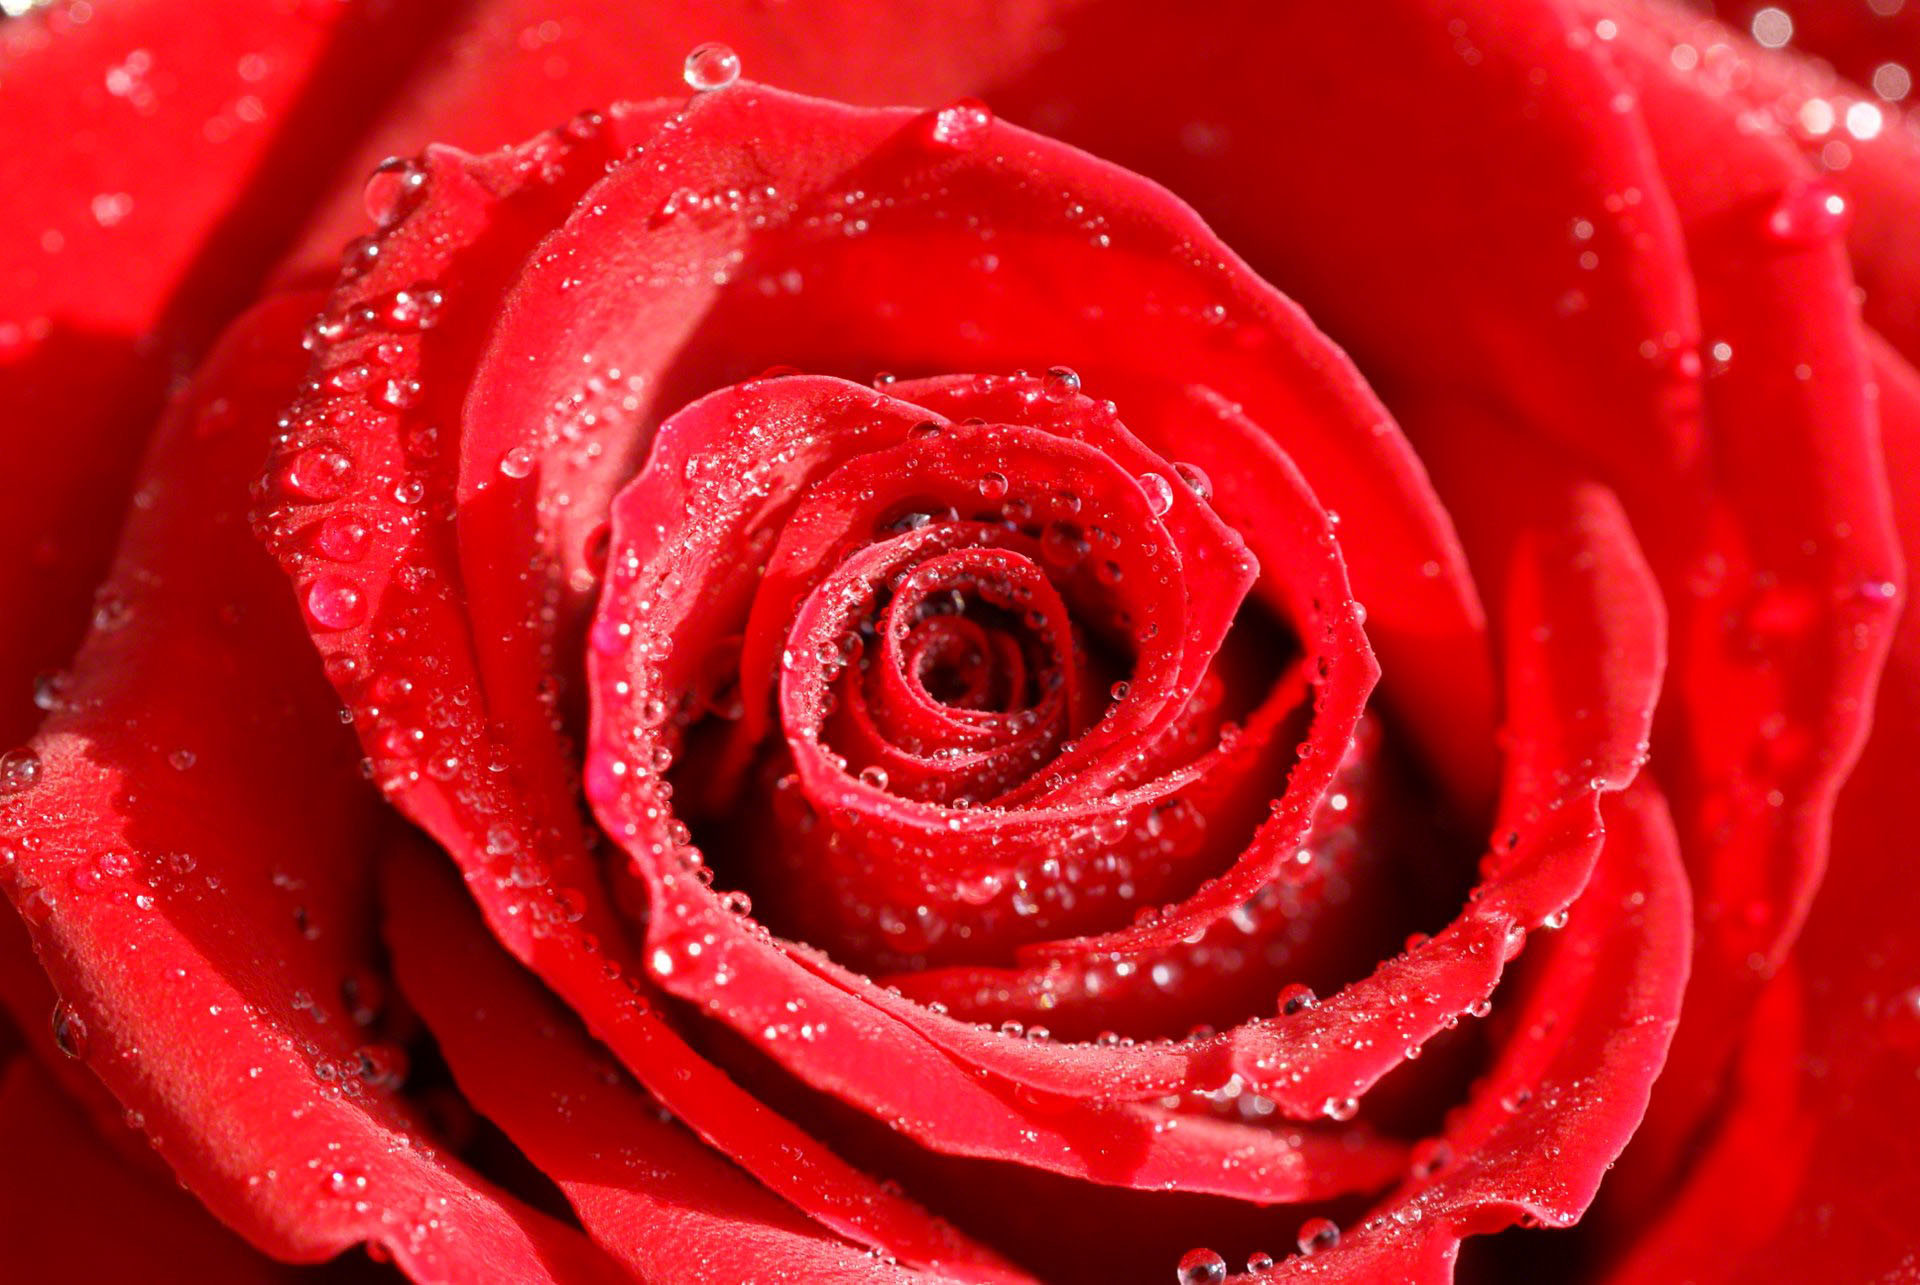 Rose Wallpaper Pictures Of Flowers , HD Wallpaper & Backgrounds